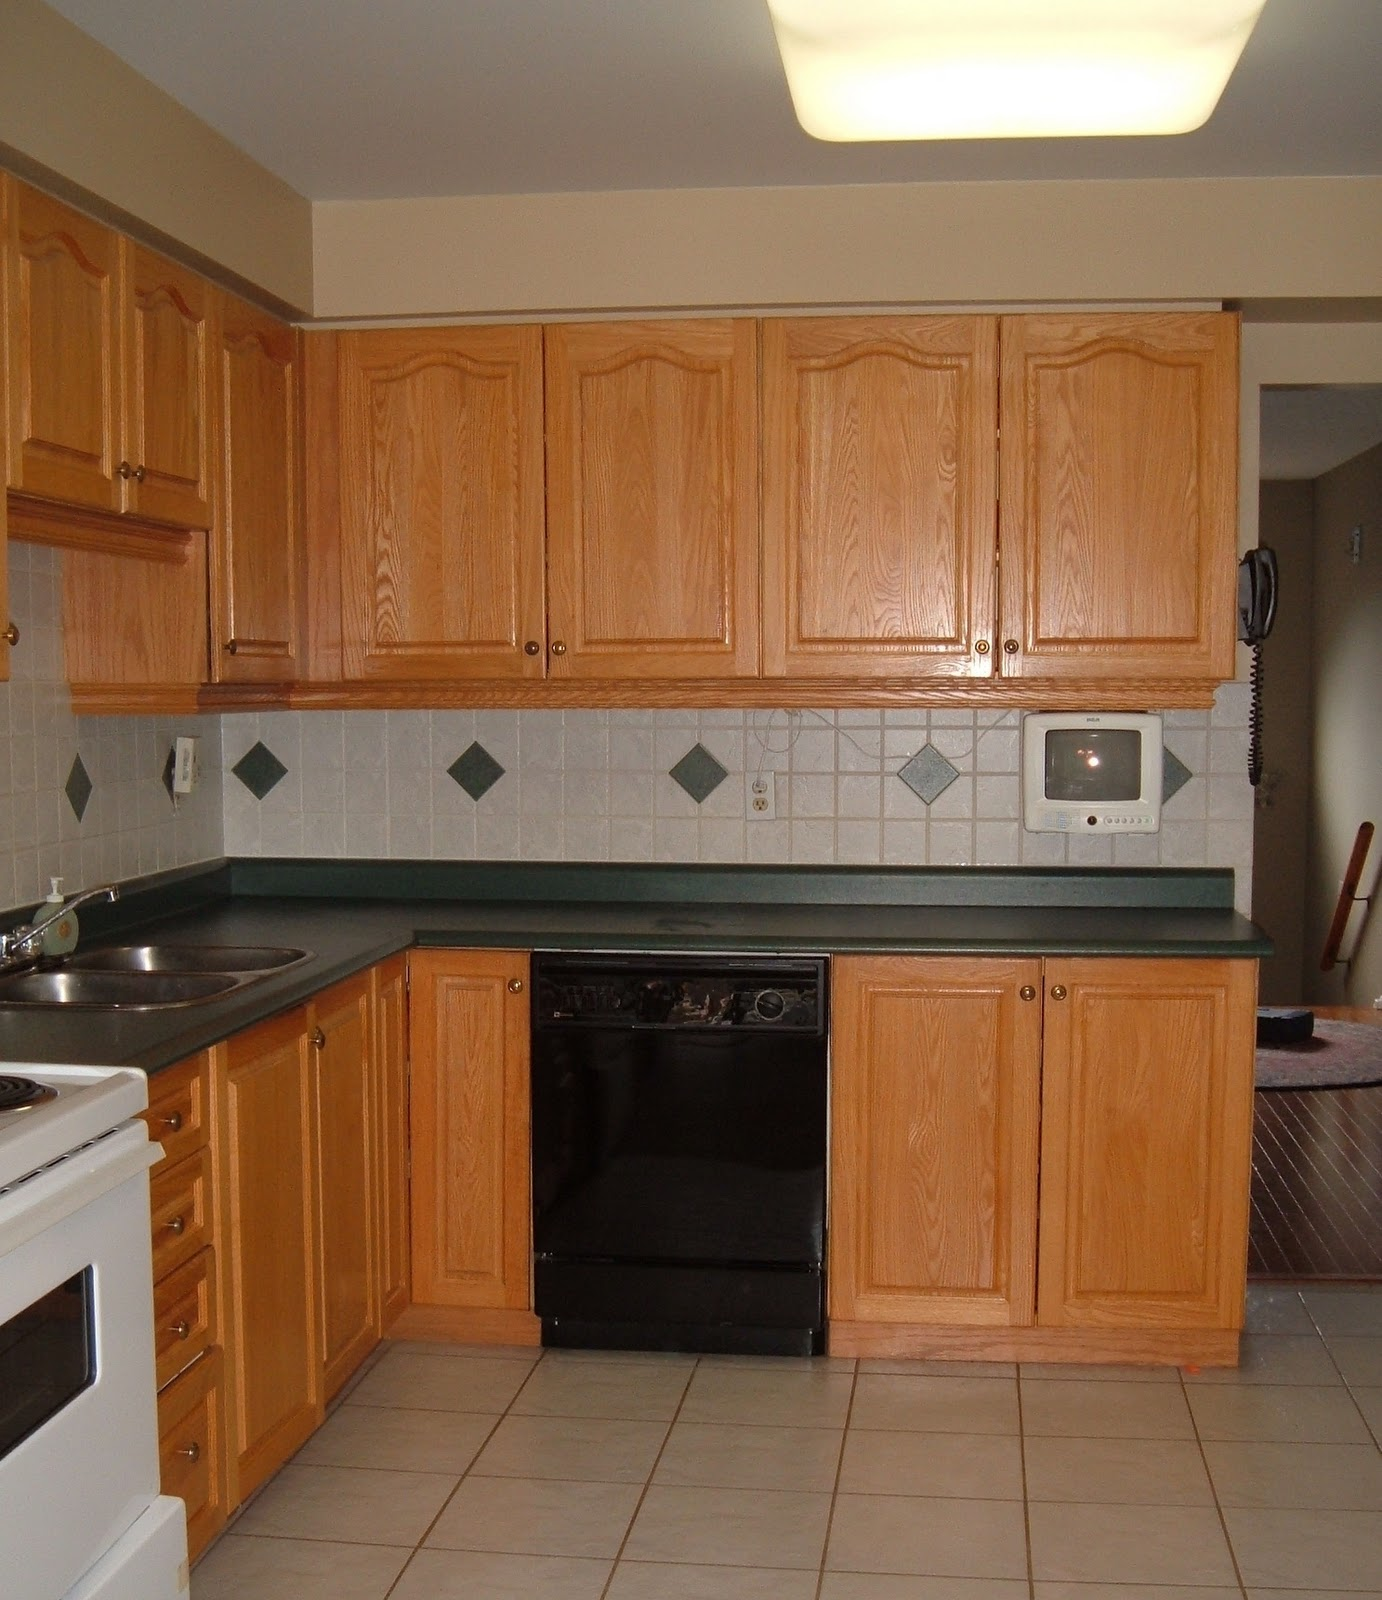 kitchen before after out with oak wholesale kitchen cabinets Kitchen Before After Out With The Oak